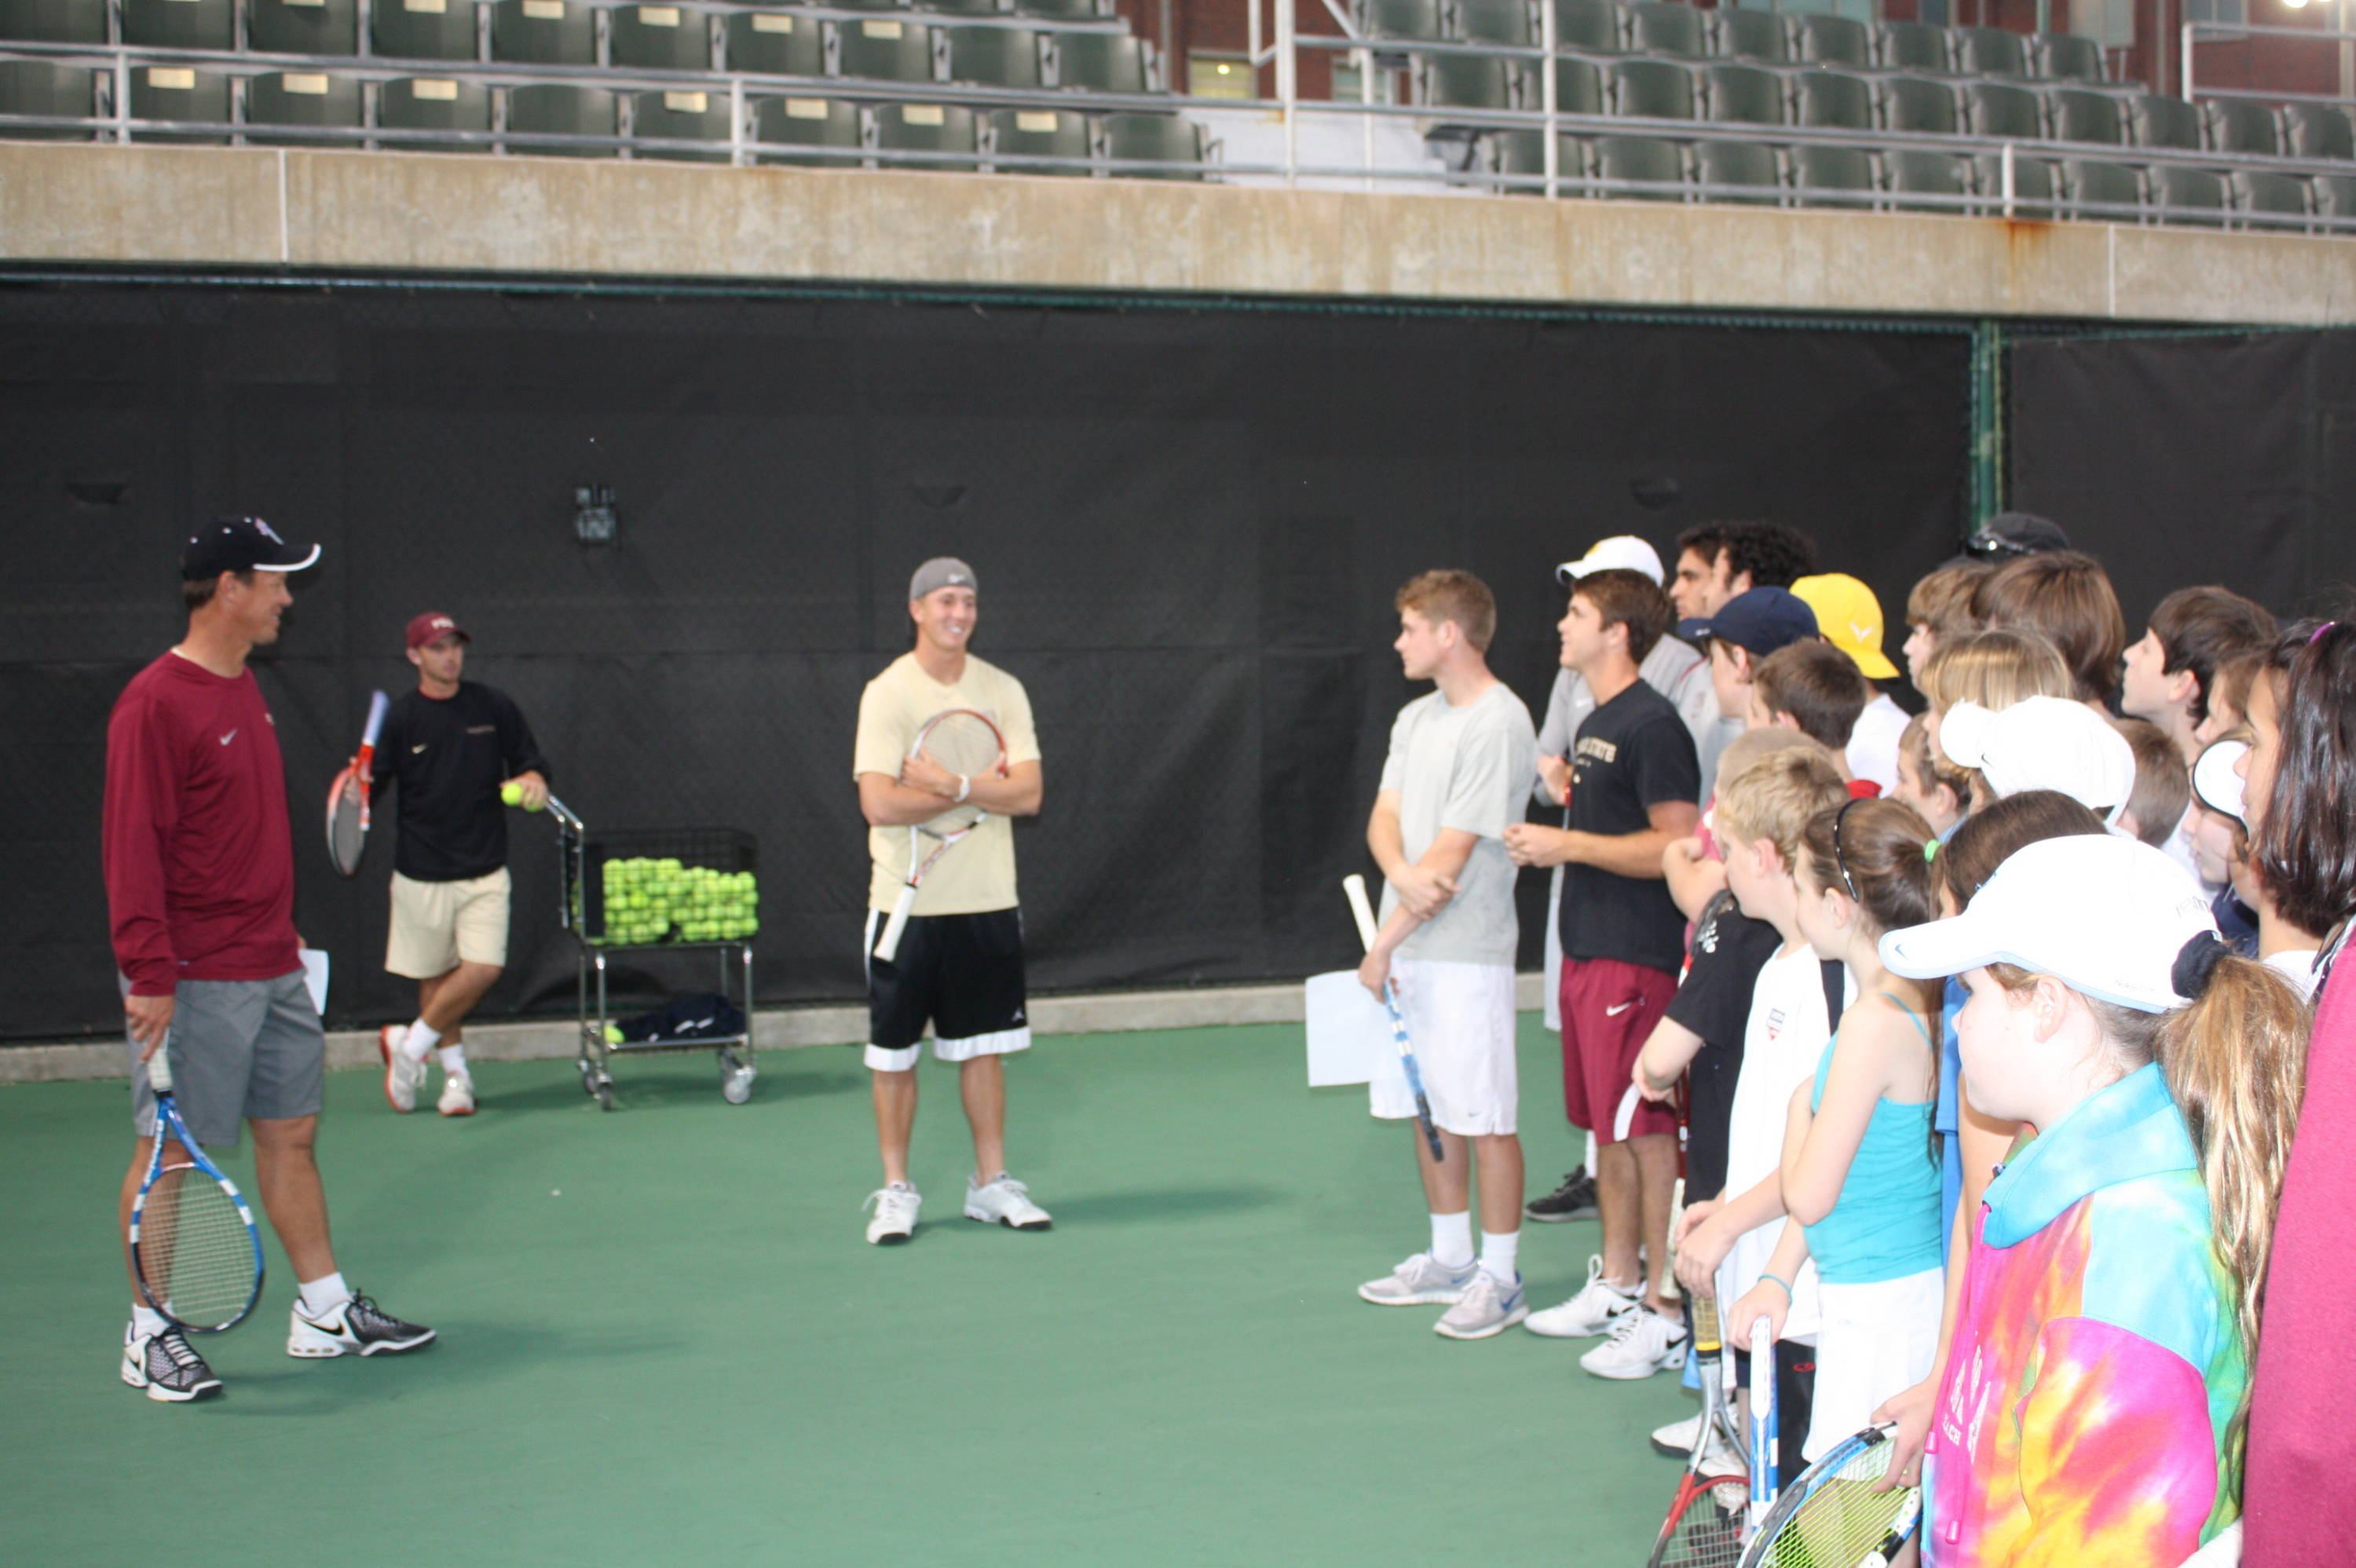 Head coach Dwayne Hultquist addresses the campers